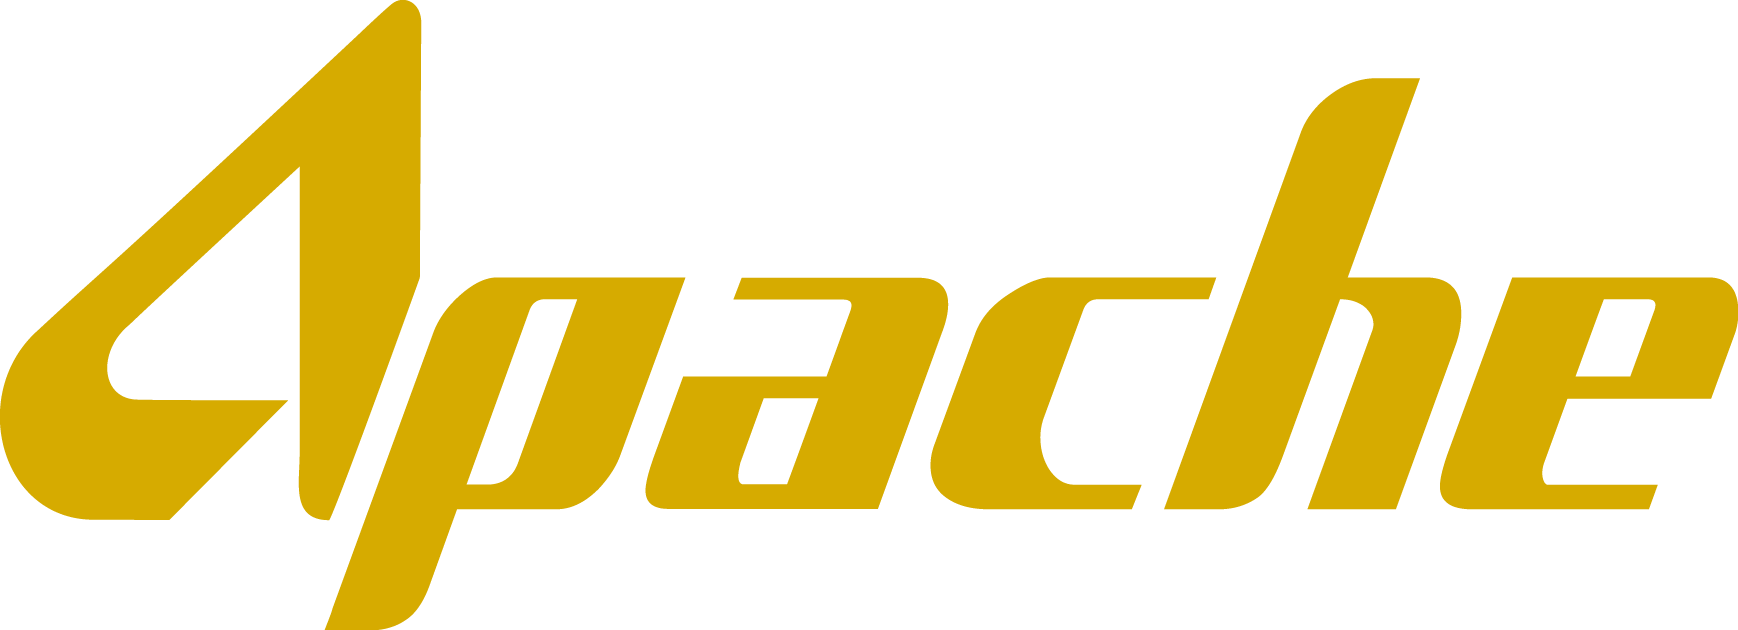 Apache Corporation Logo png